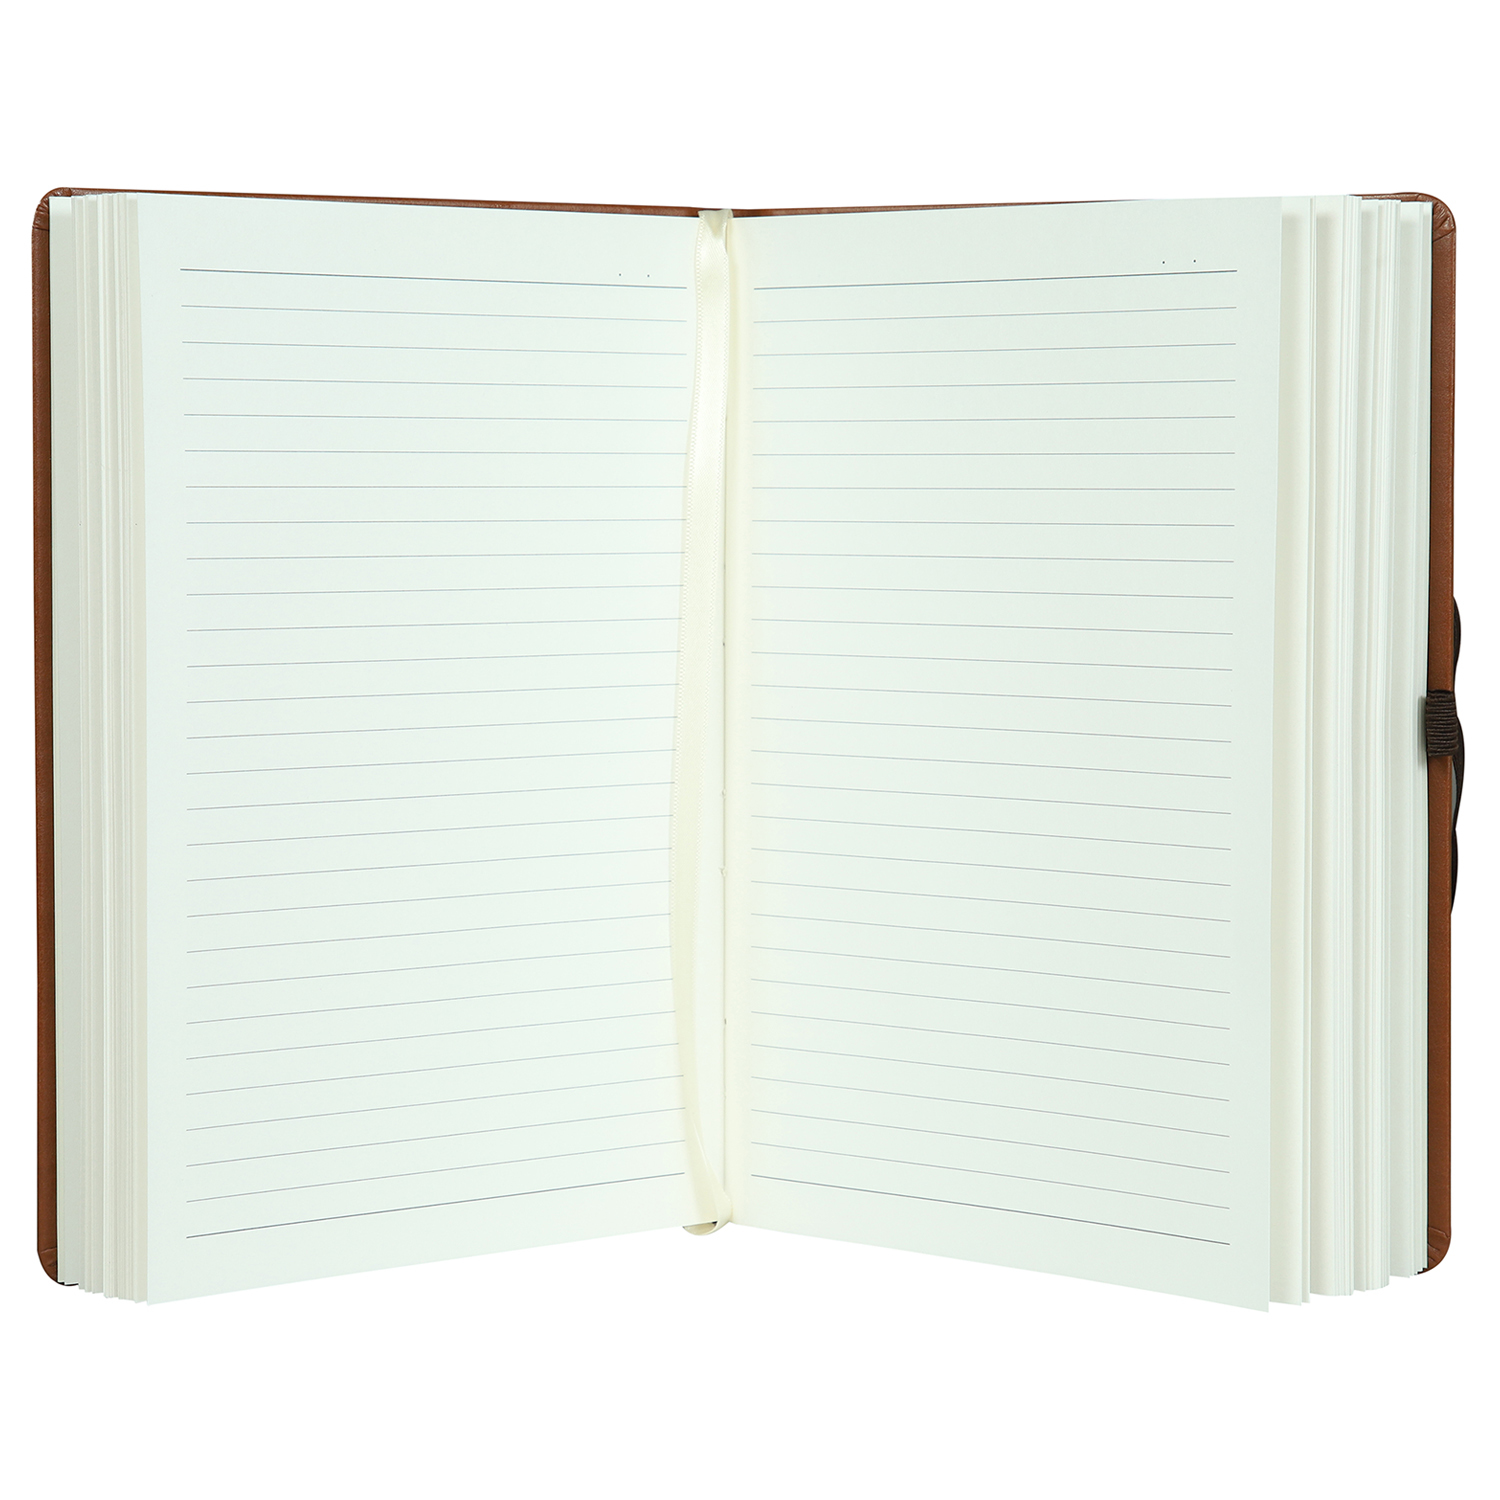 PU Leather  Personal Notes - A5 Size - Hard Bound Notebook with Elastic Band